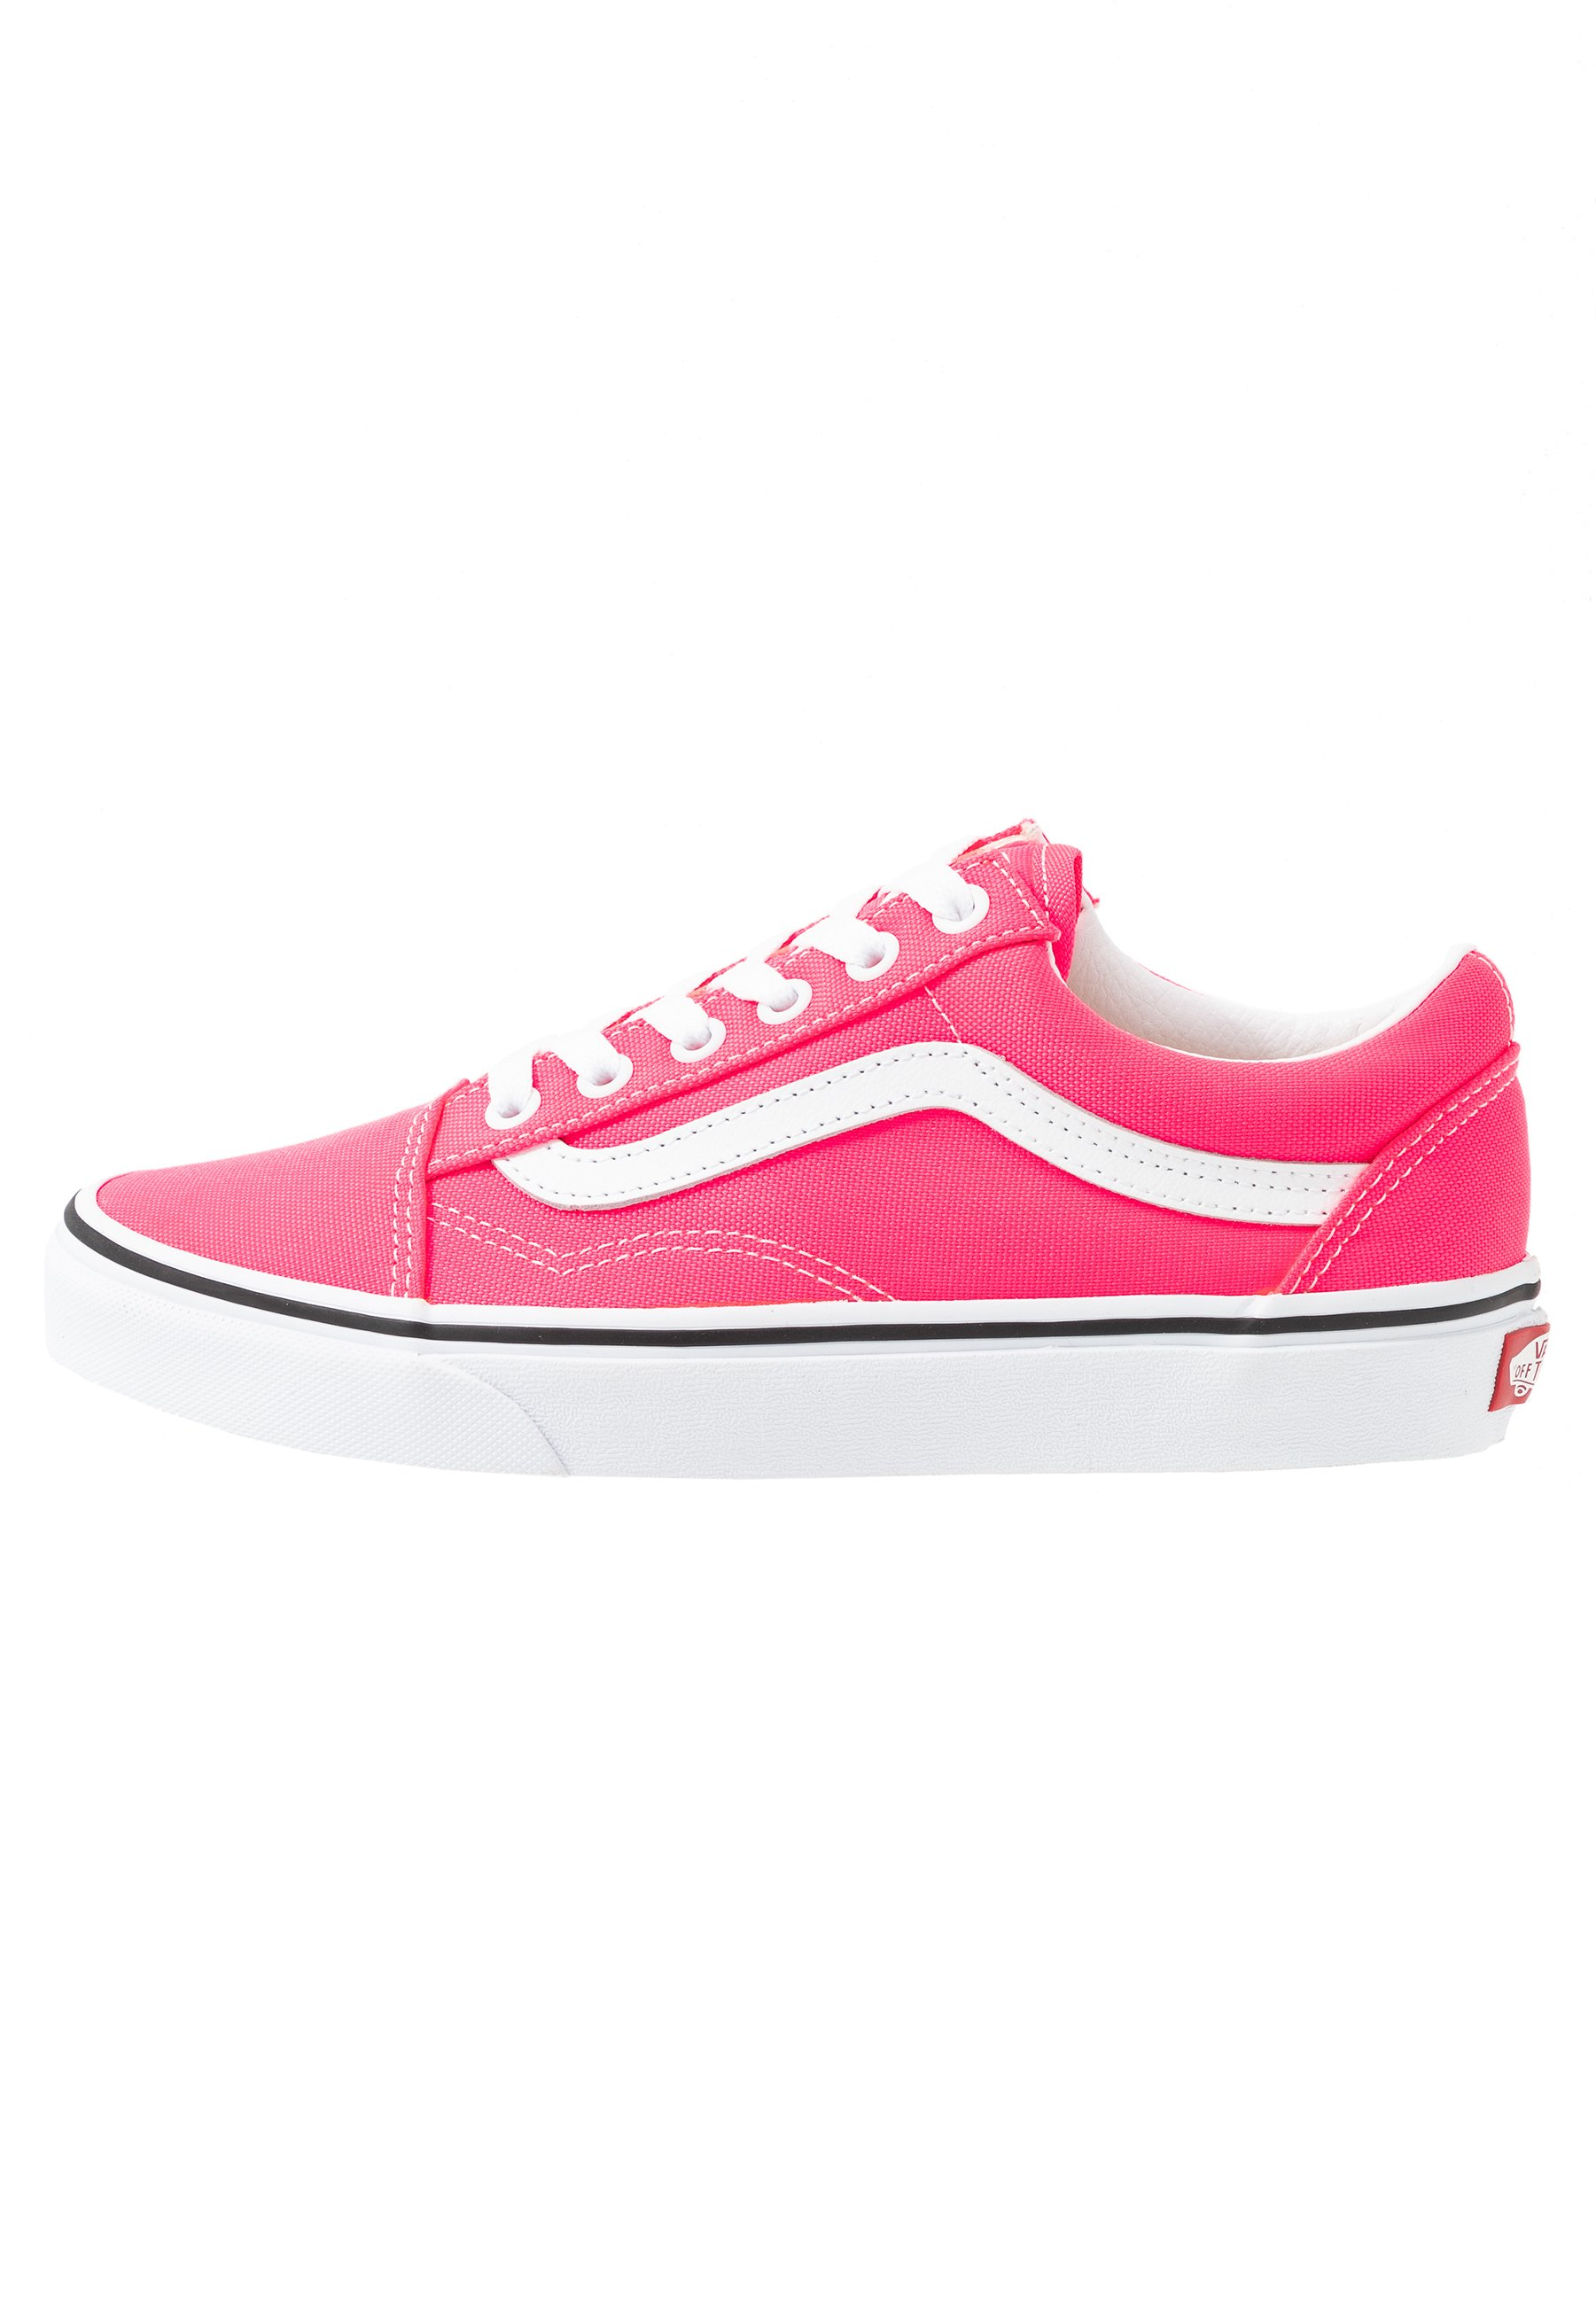 OLD SKOOL Sneaker low knockout pinktrue white